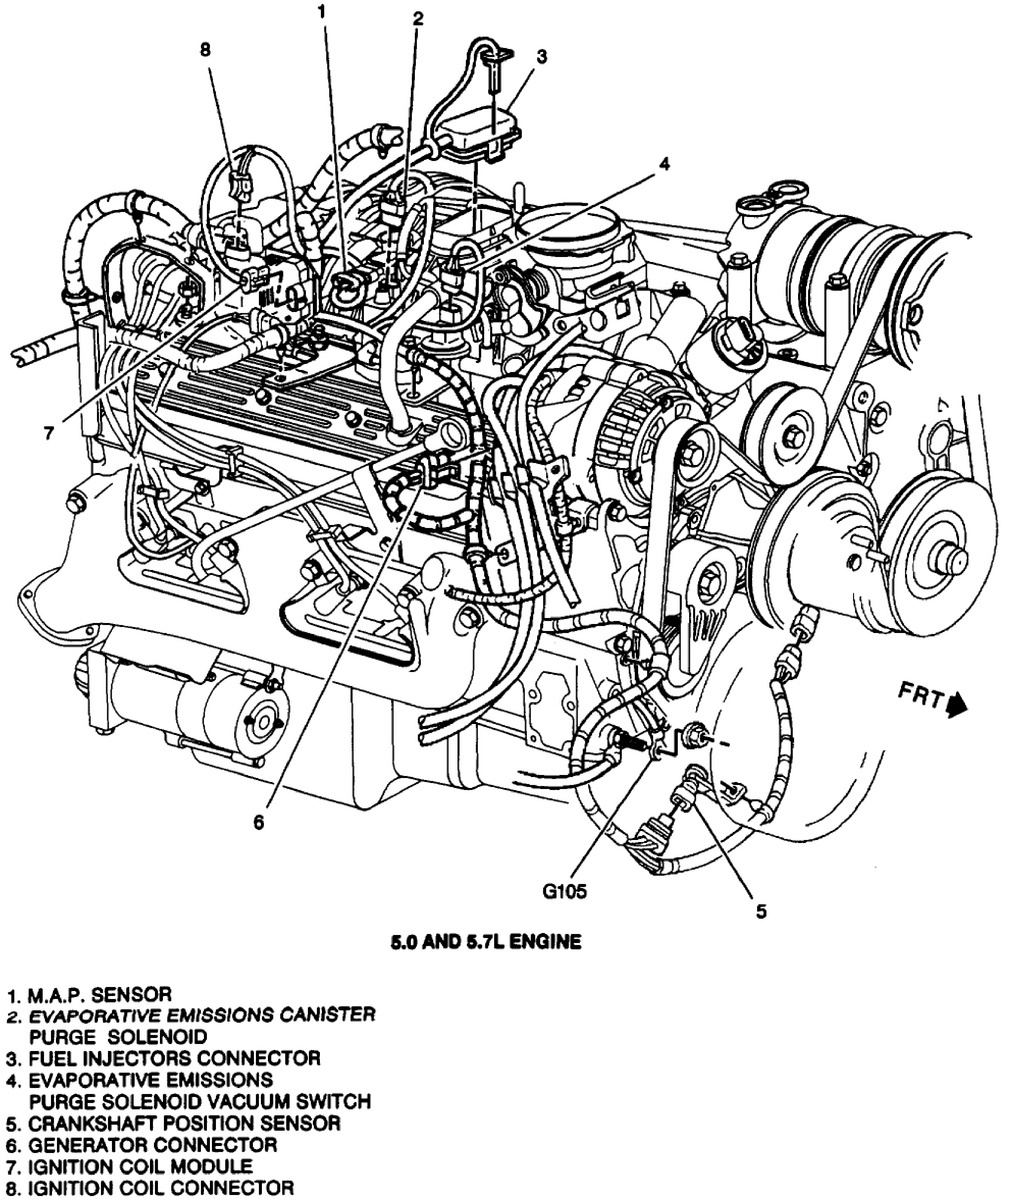 hight resolution of 2007 tahoe engine diagram wiring diagram third level 1997 chevy tahoe wiring diagram 07 chevy tahoe engine diagram